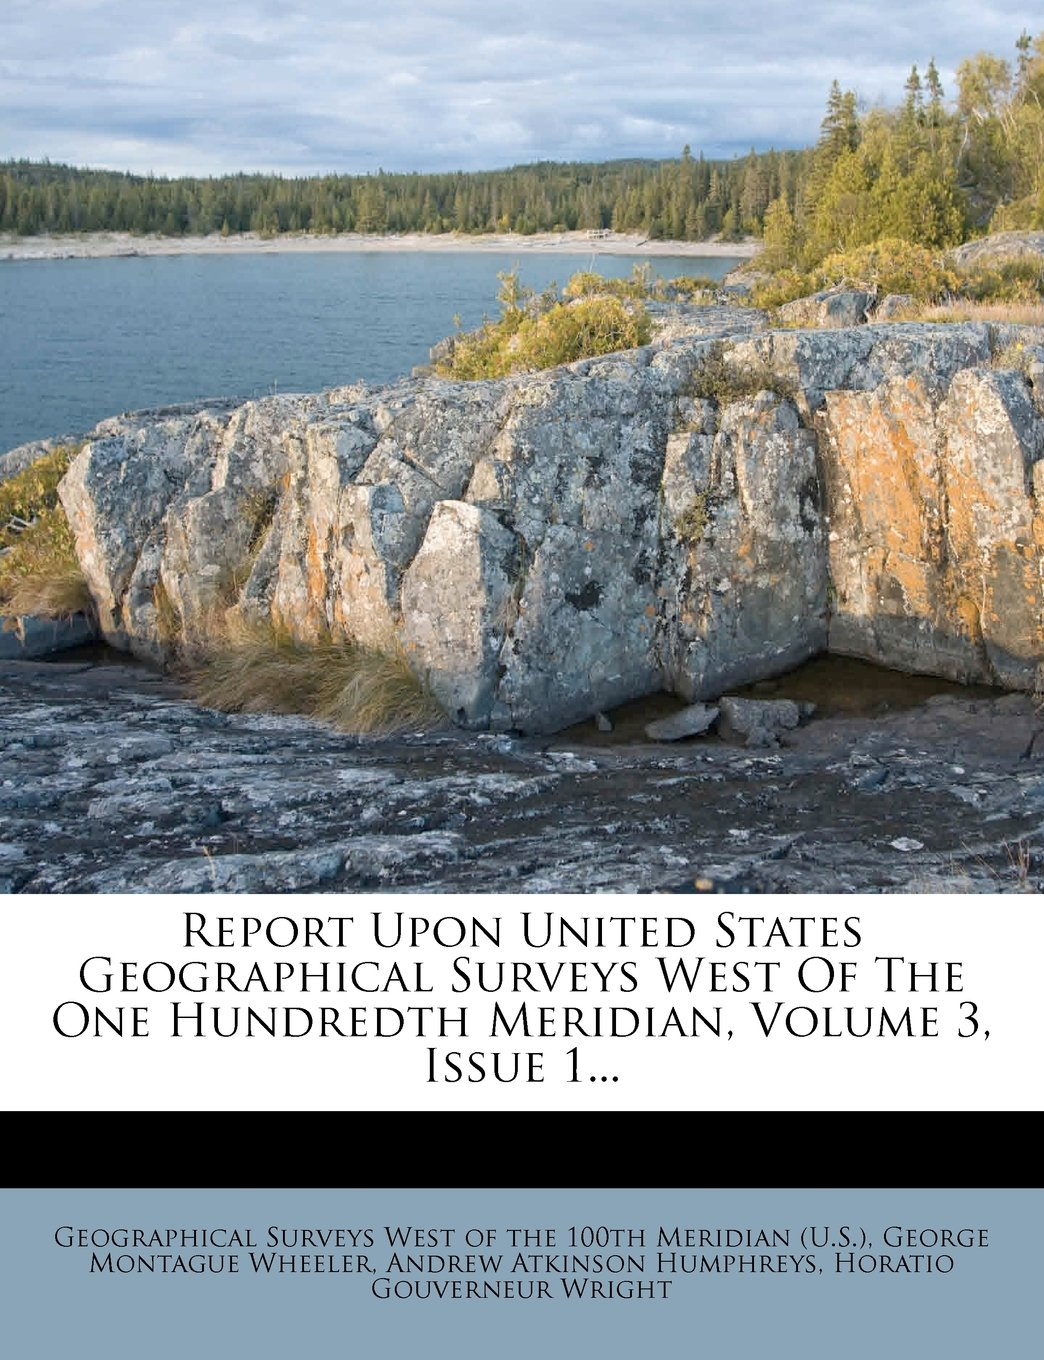 Report Upon United States Geographical Surveys West Of The One Hundredth Meridian, Volume 3, Issue 1... pdf